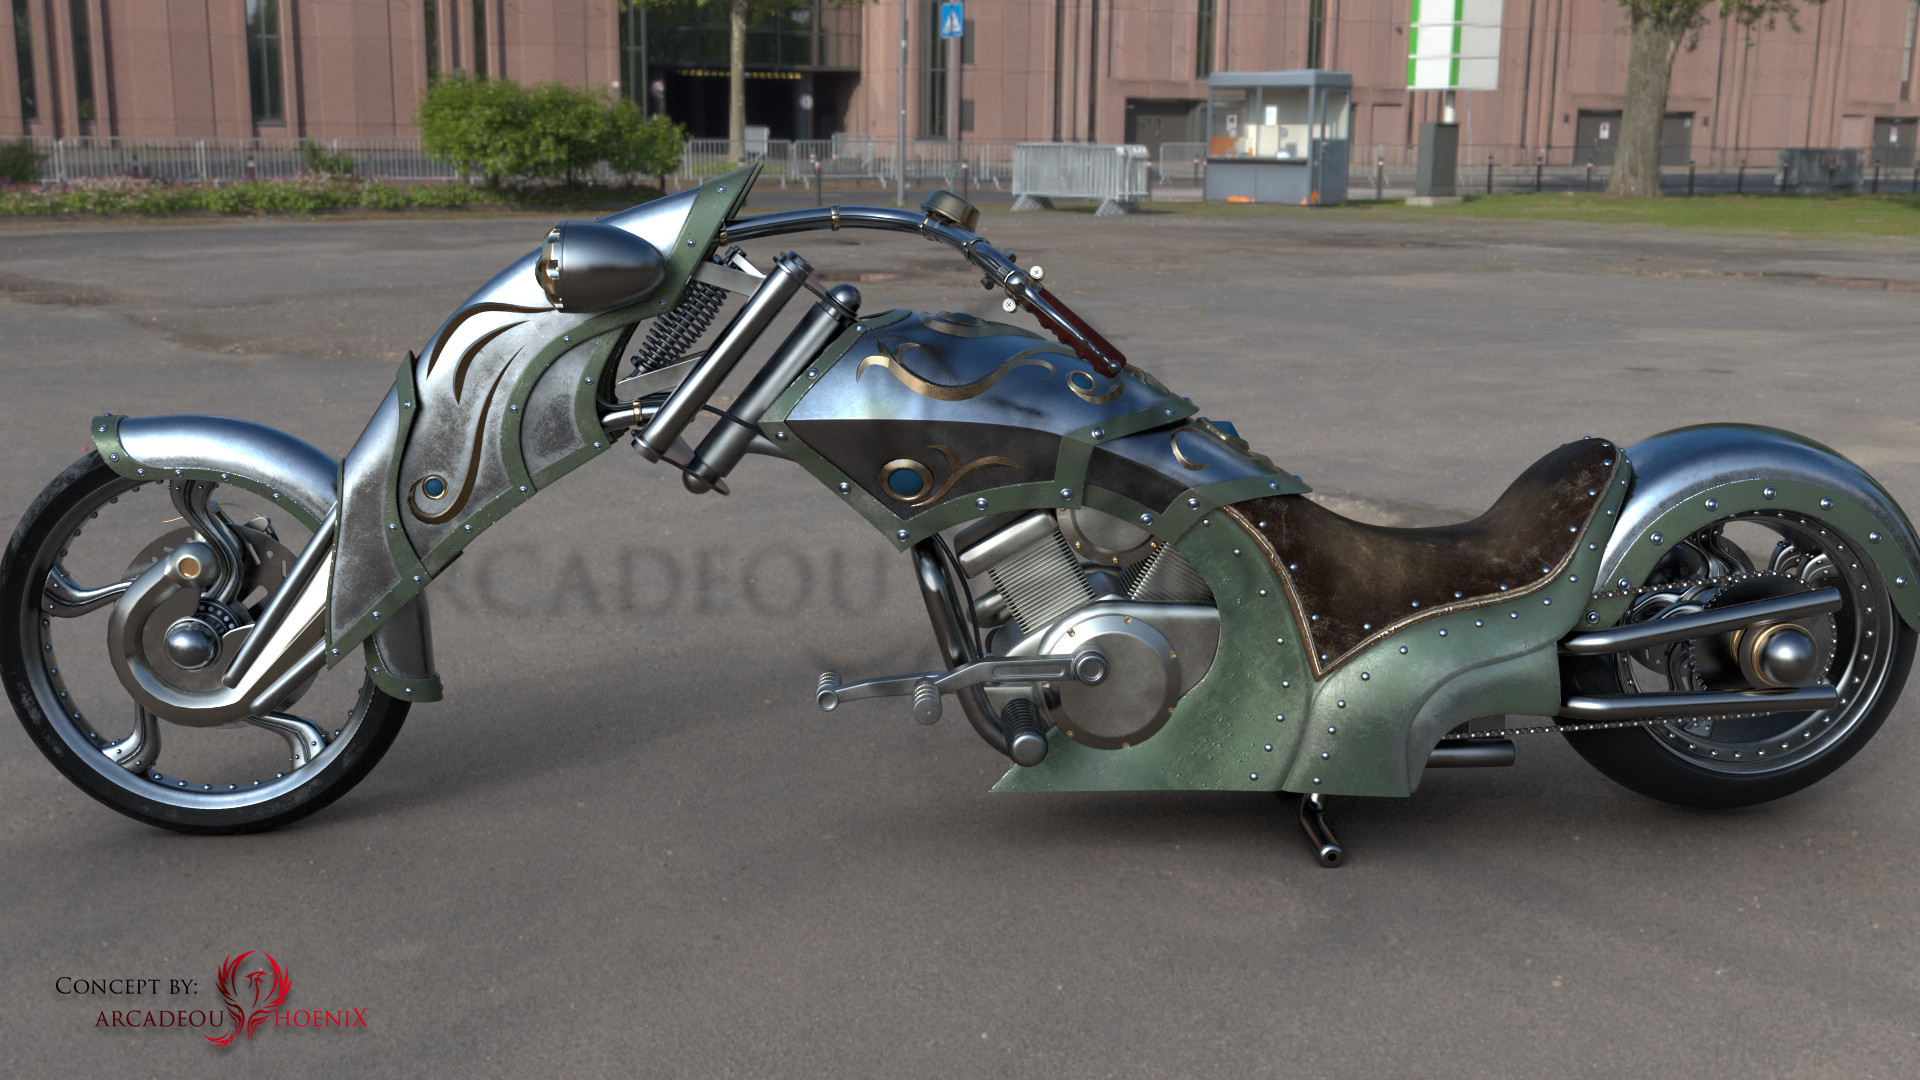 Arcadeous phoenix steam bike r8c